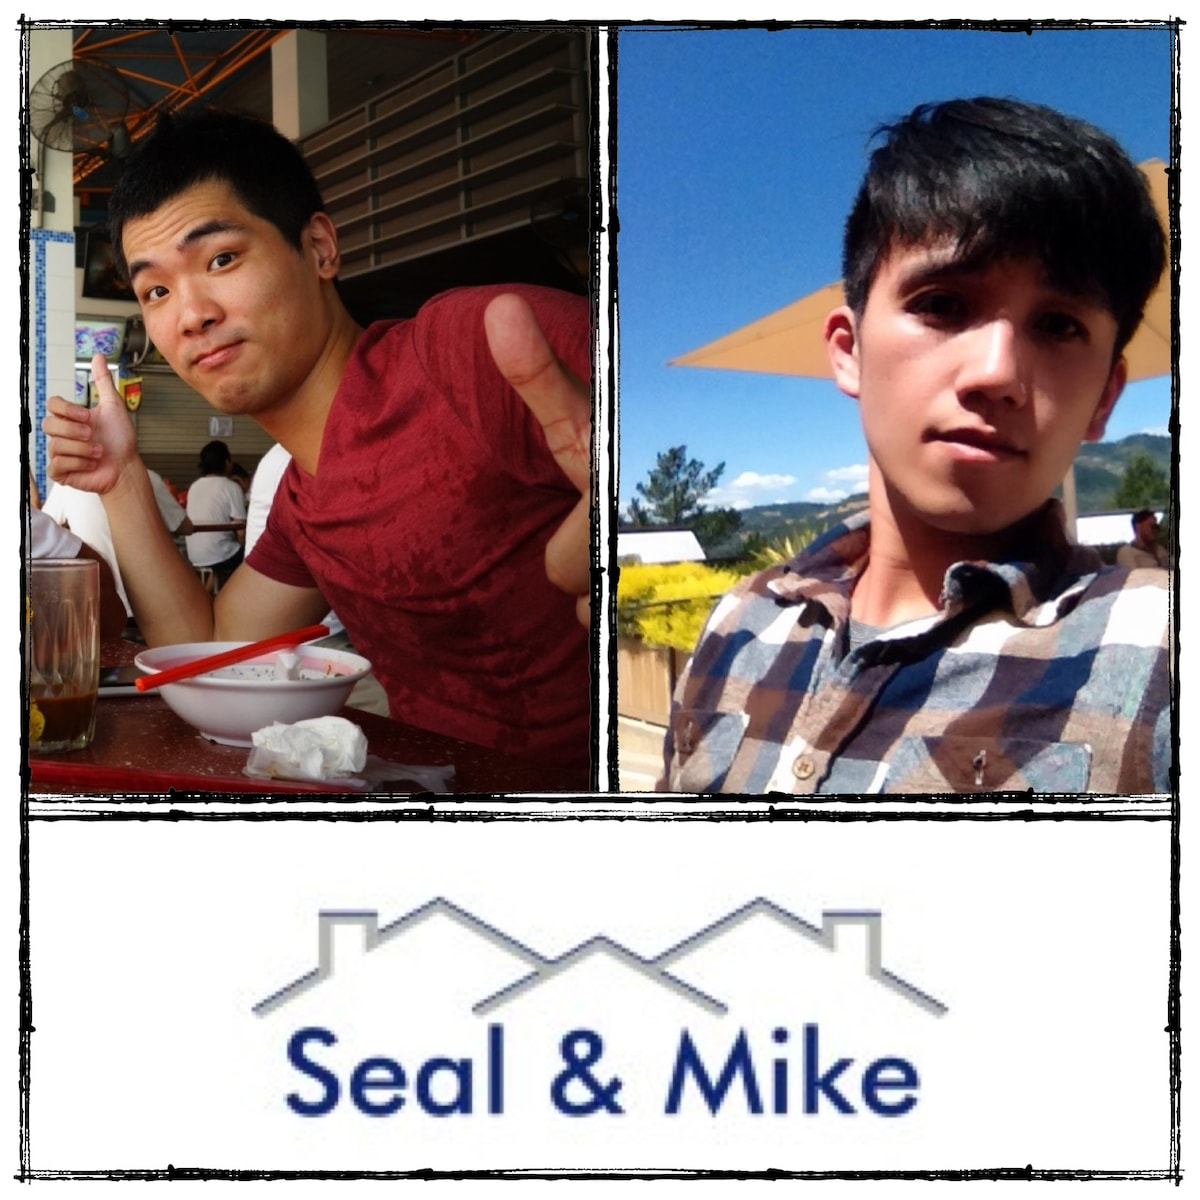 Seal & Mike from Xinyi District